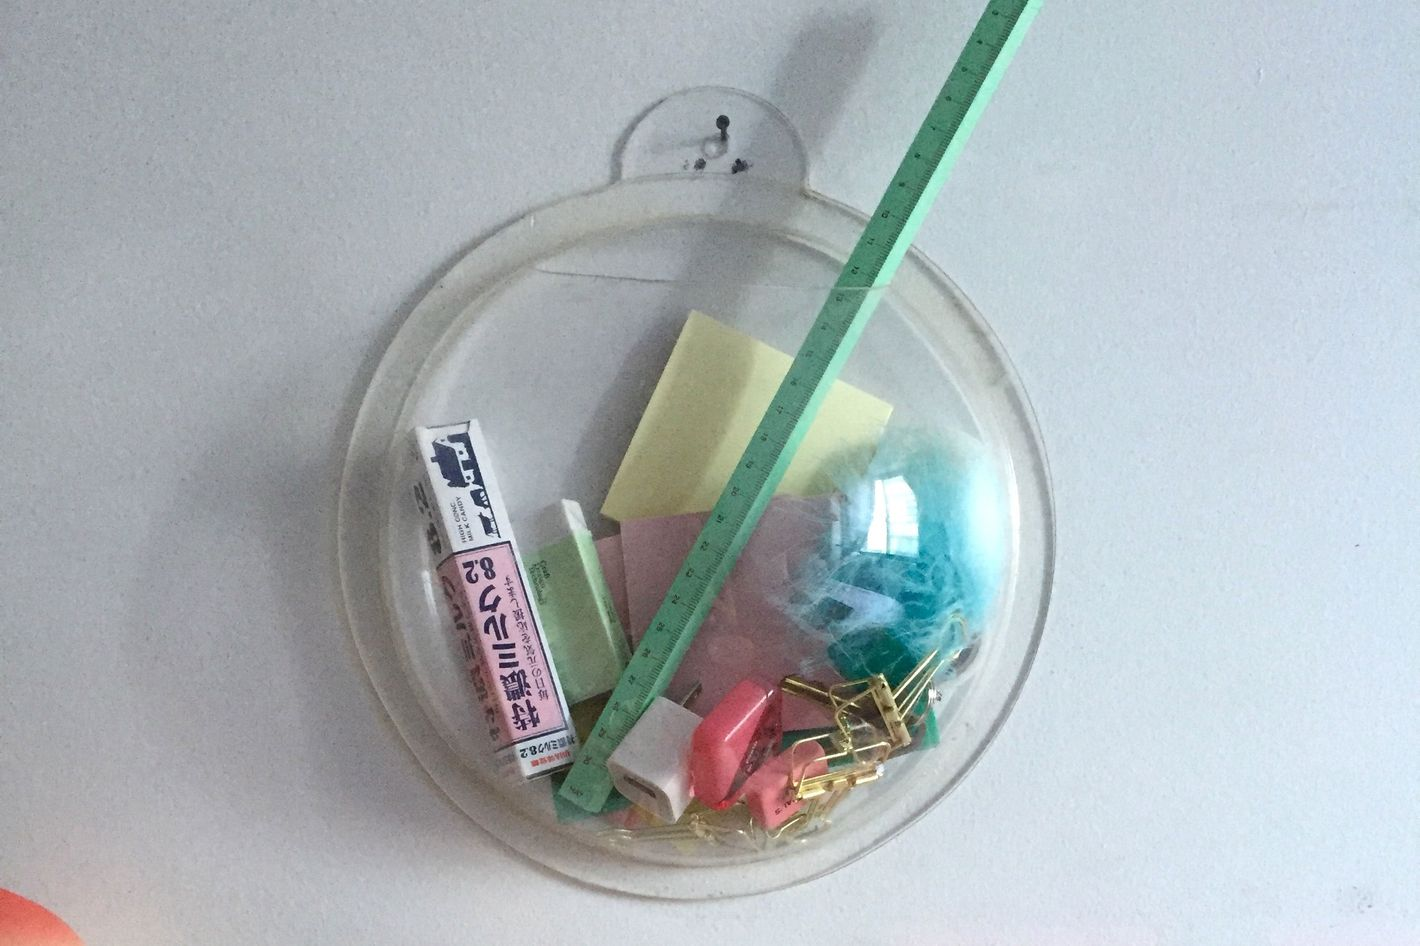 Best storage cabinet is the cabridor for Acrylic fish bowl